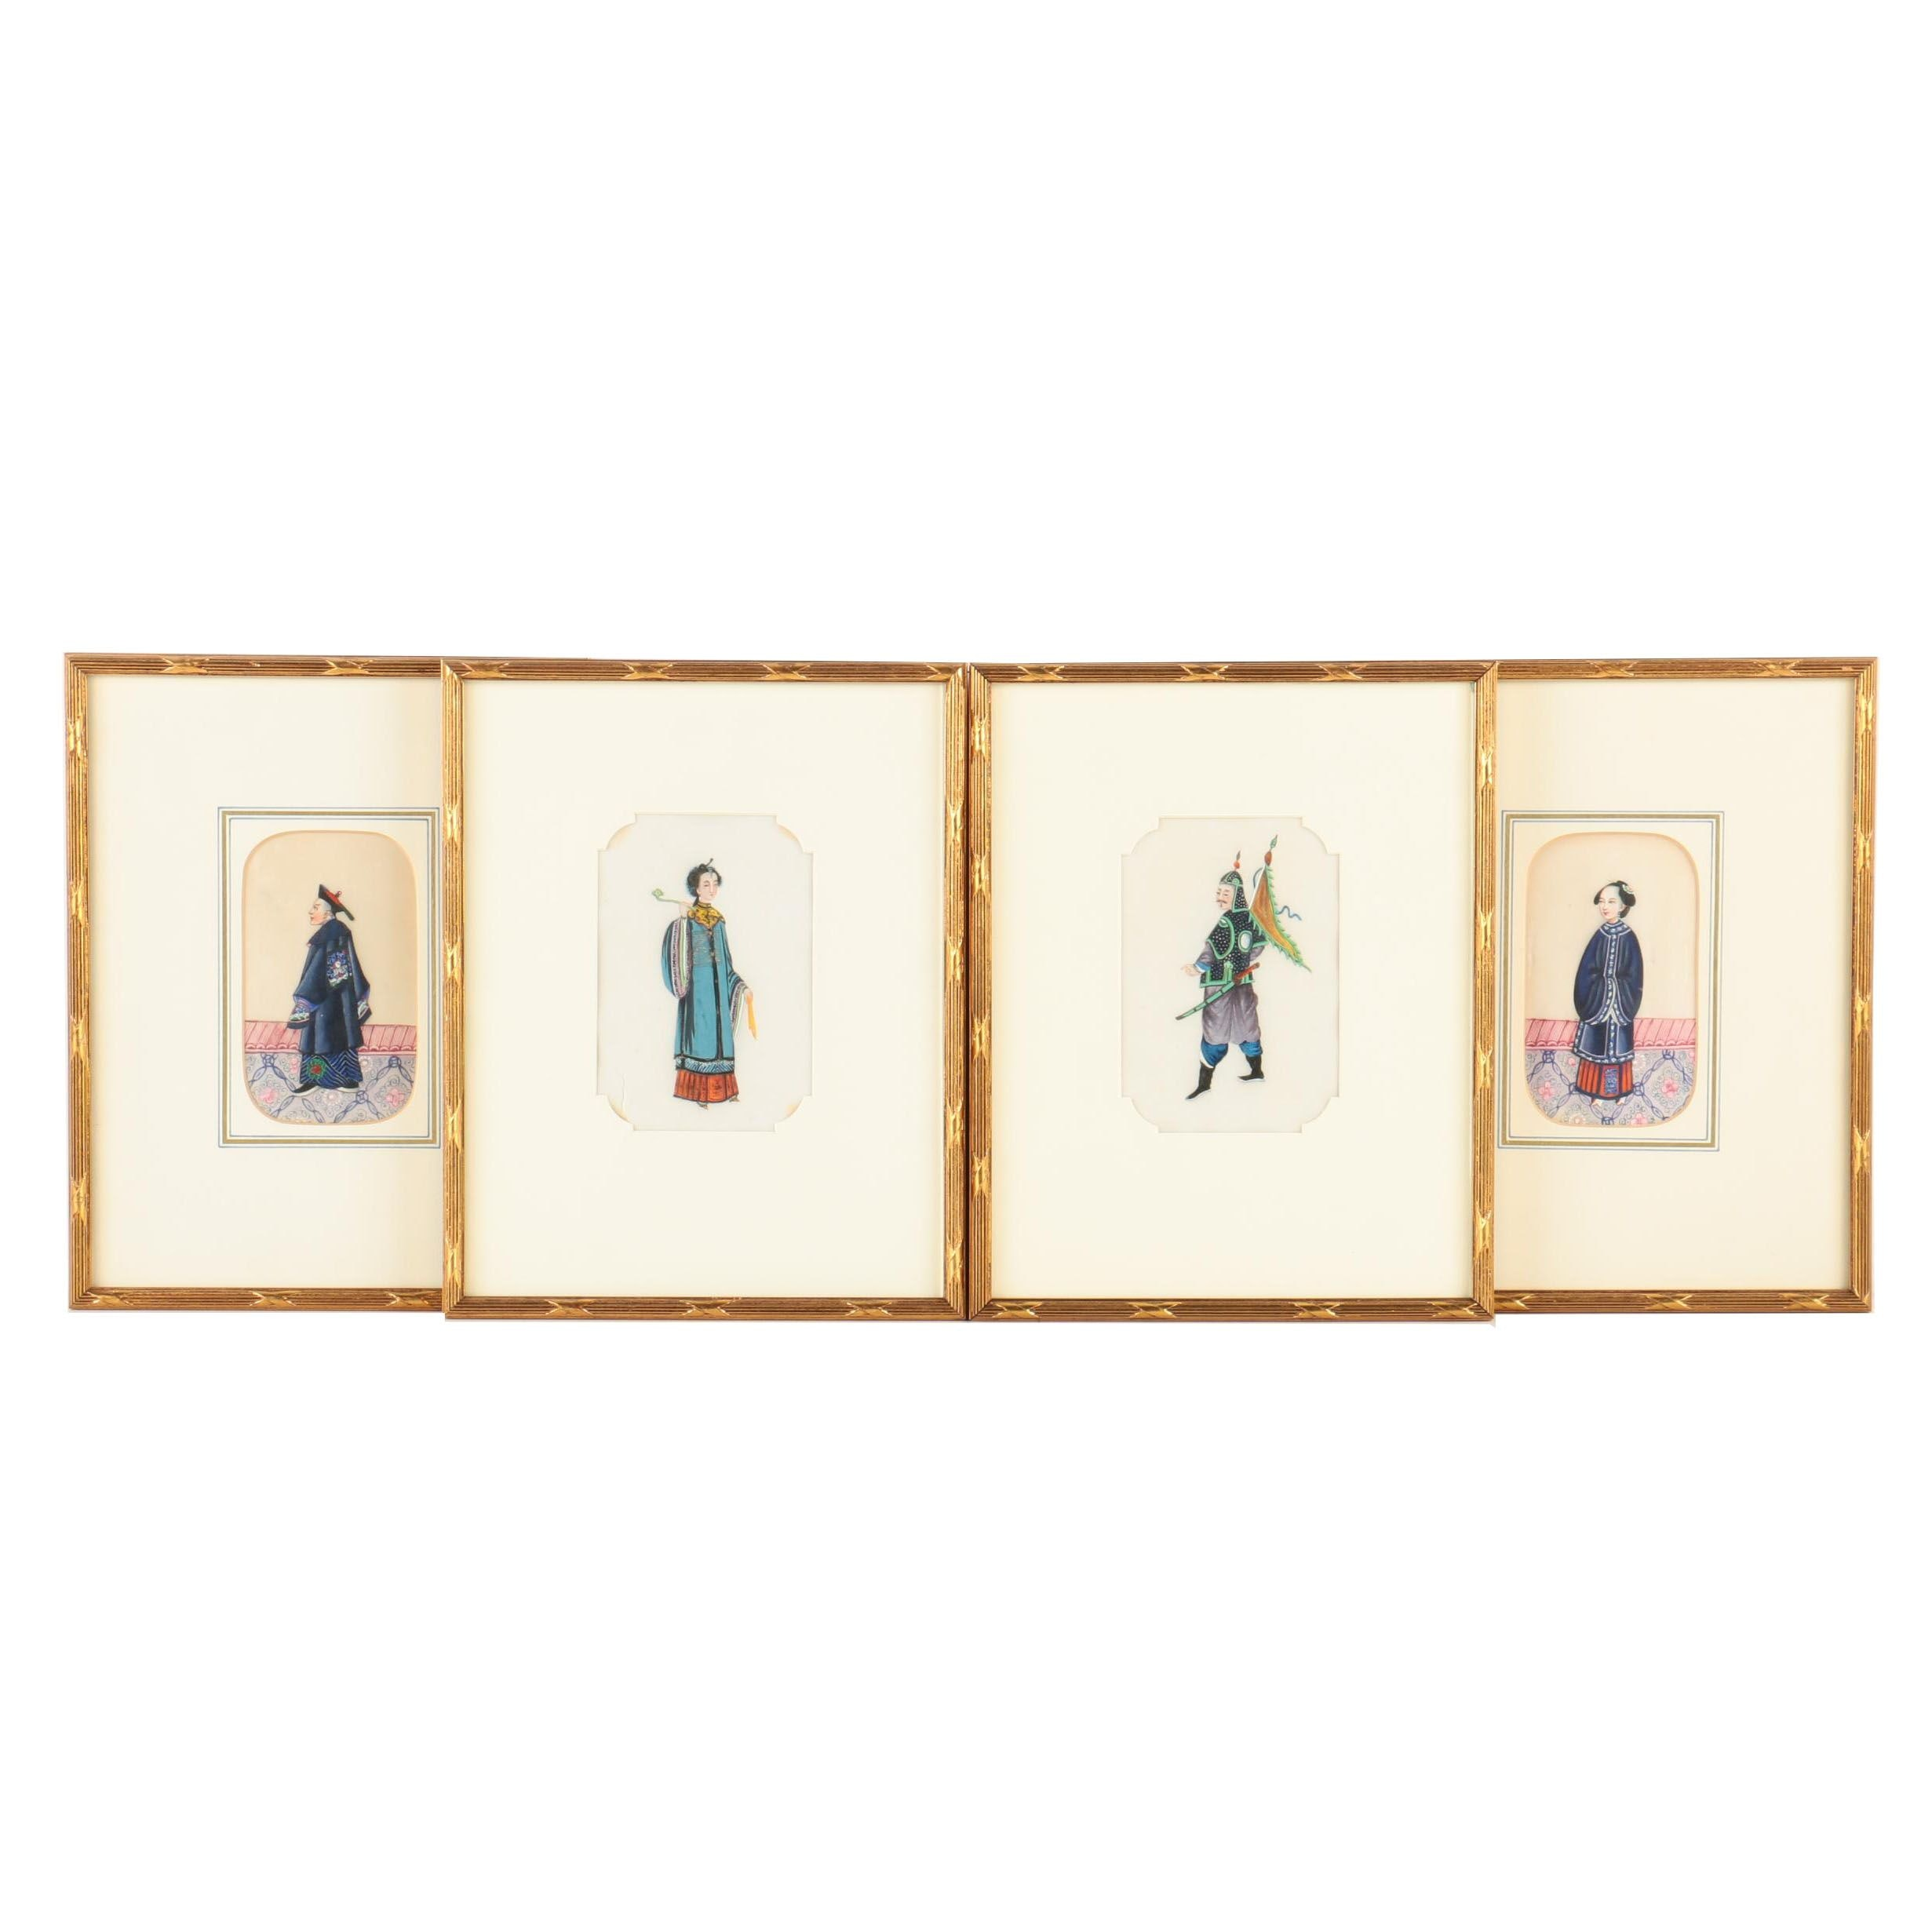 Collection of East Asian Paintings of Figures